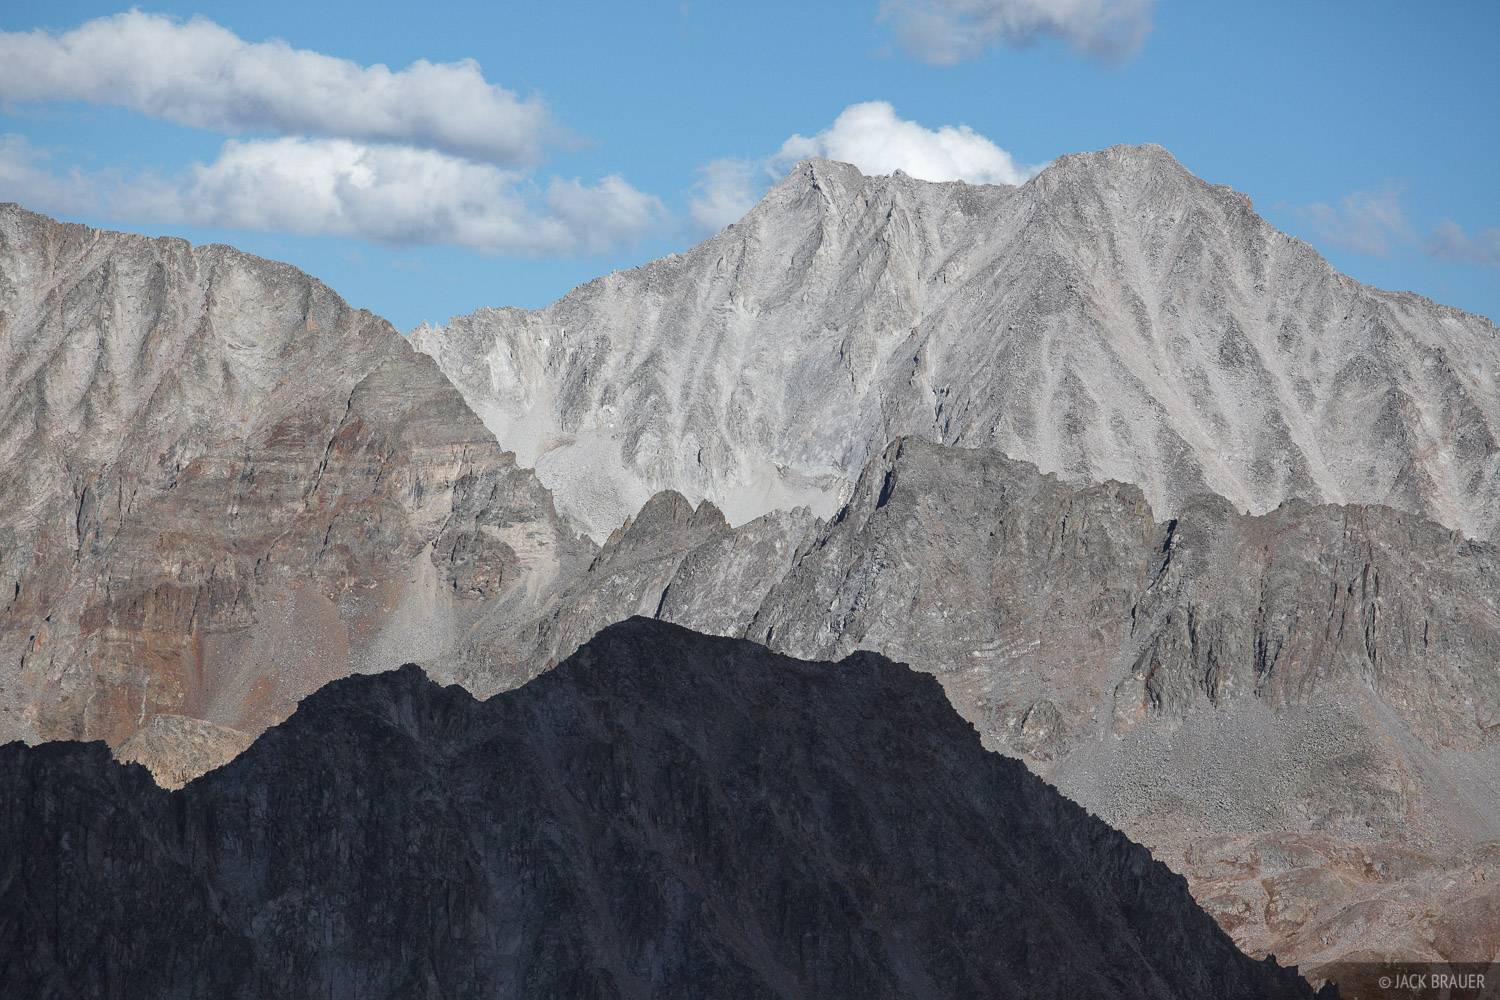 Colorado, Elk Mountains, Snowmass, Avalanche Pass, 14er, Maroon Bells-Snowmass Wilderness, photo